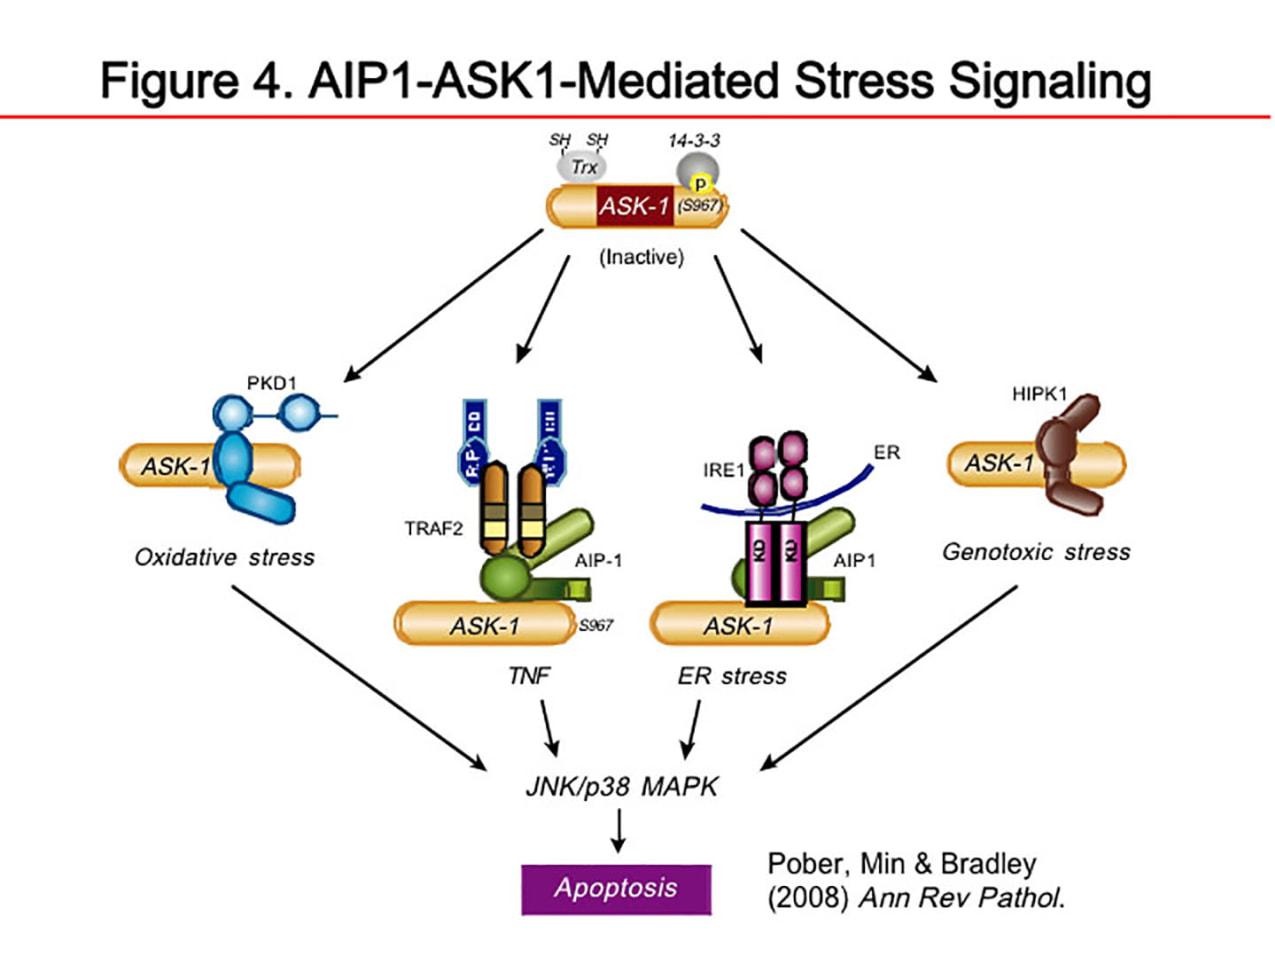 Figure 4: A1P1-ASK1-Mediated Stress Signaling